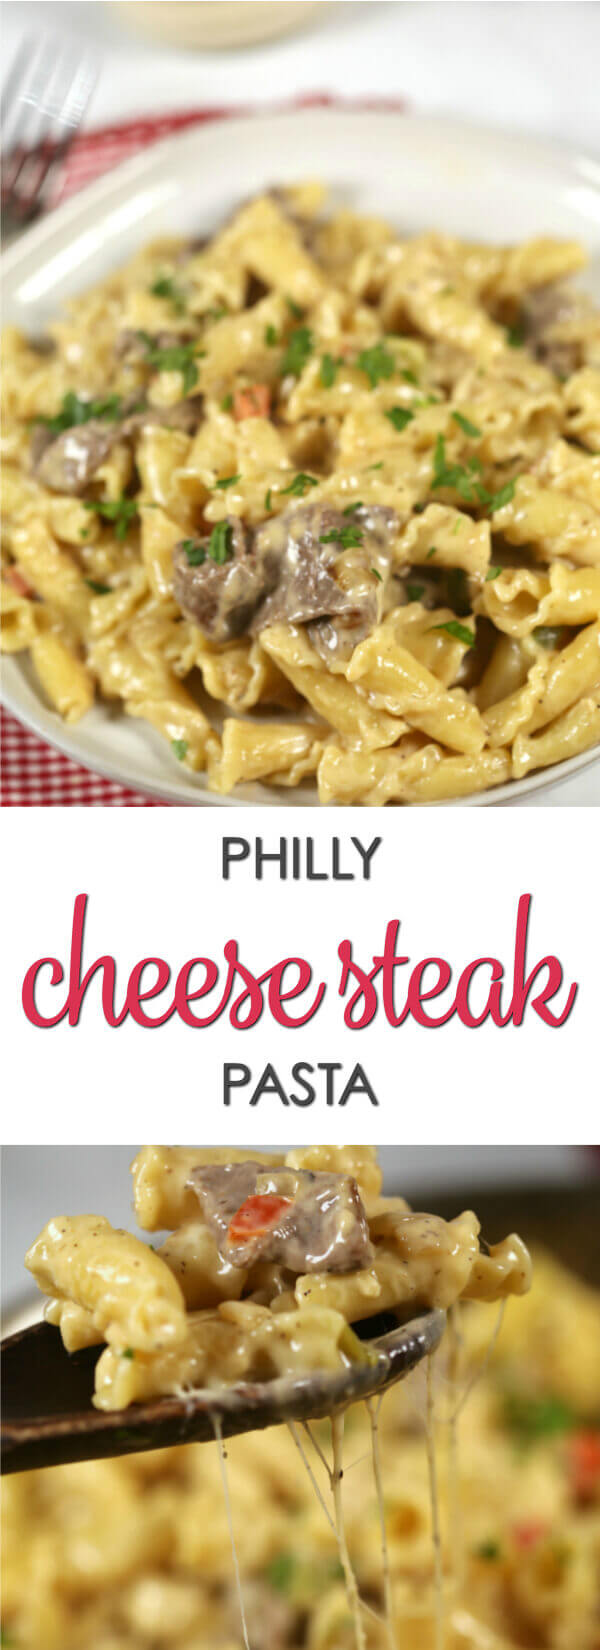 This recipe is a fun twist on the best Philly Cheese Steak recipe.  It's easy to make and incredibly delicious. You have to try this Philly Cheese Steak Pasta.